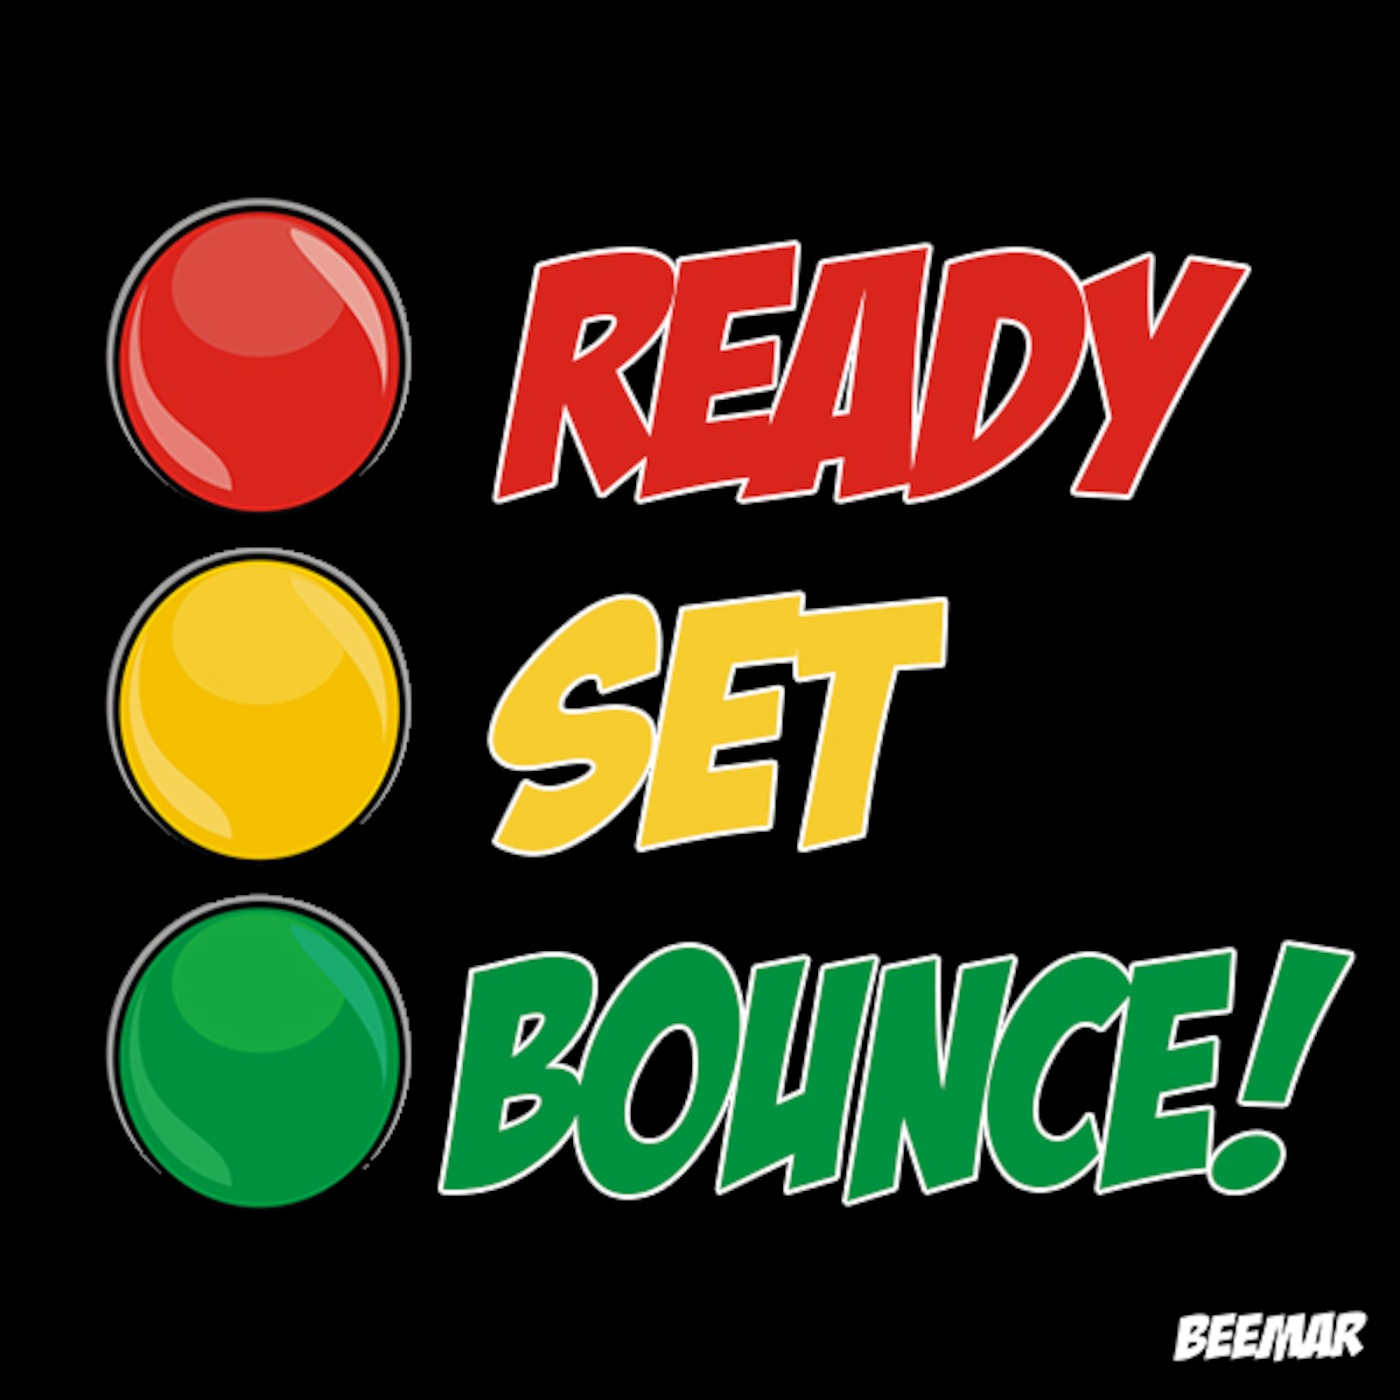 Ready Set Bounce!